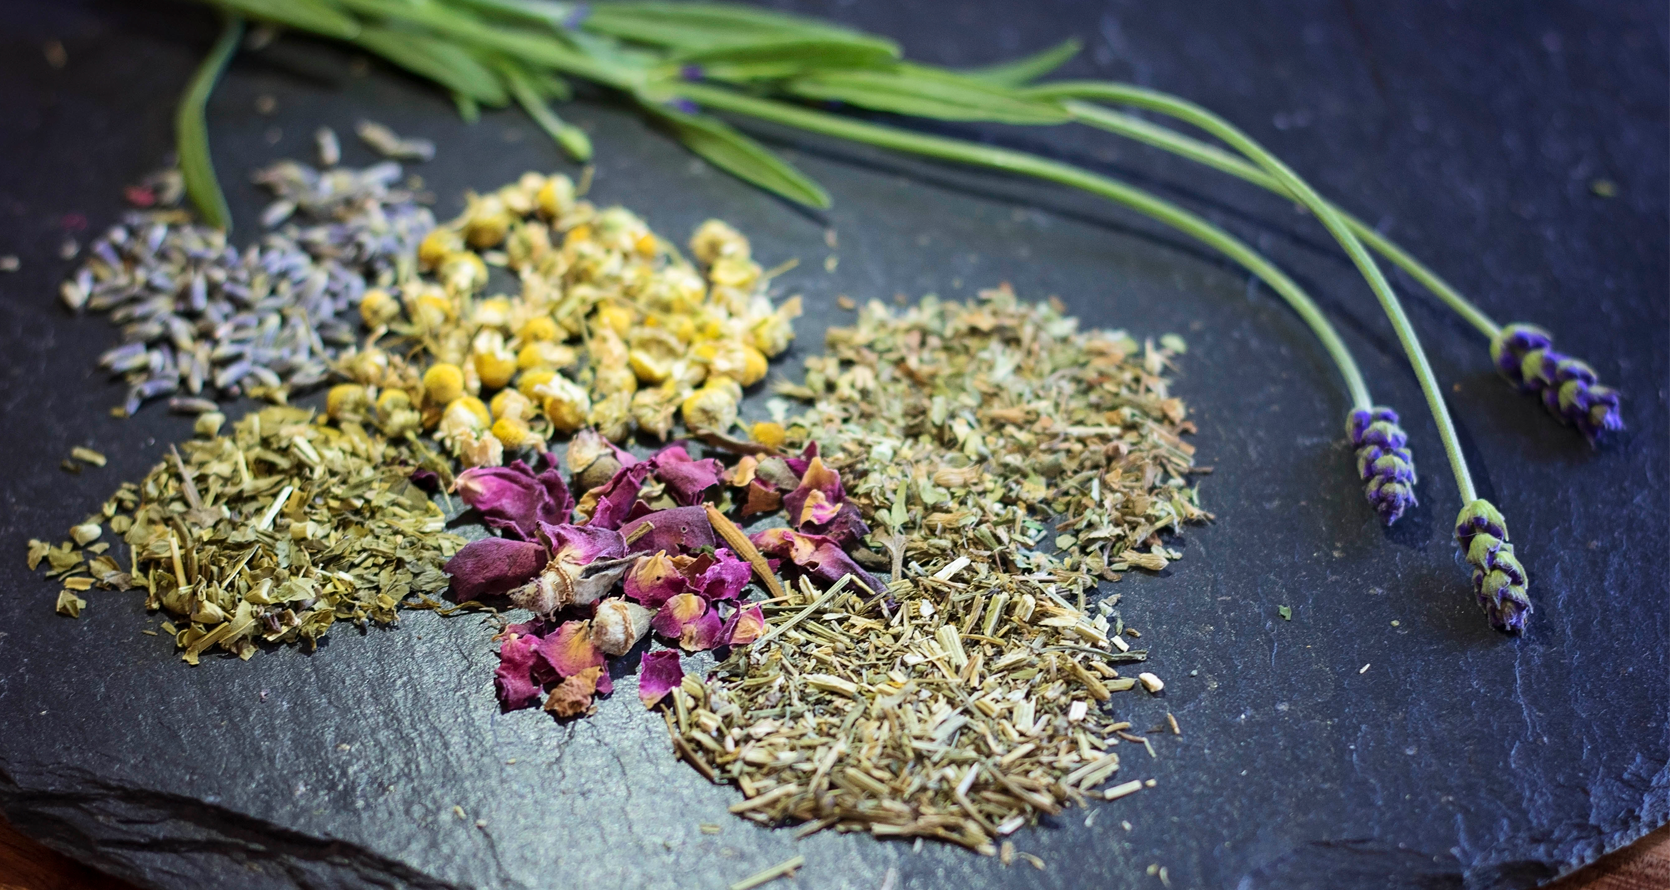 Various herbs used in herbal medicine pictured, including lavender and chamomile.